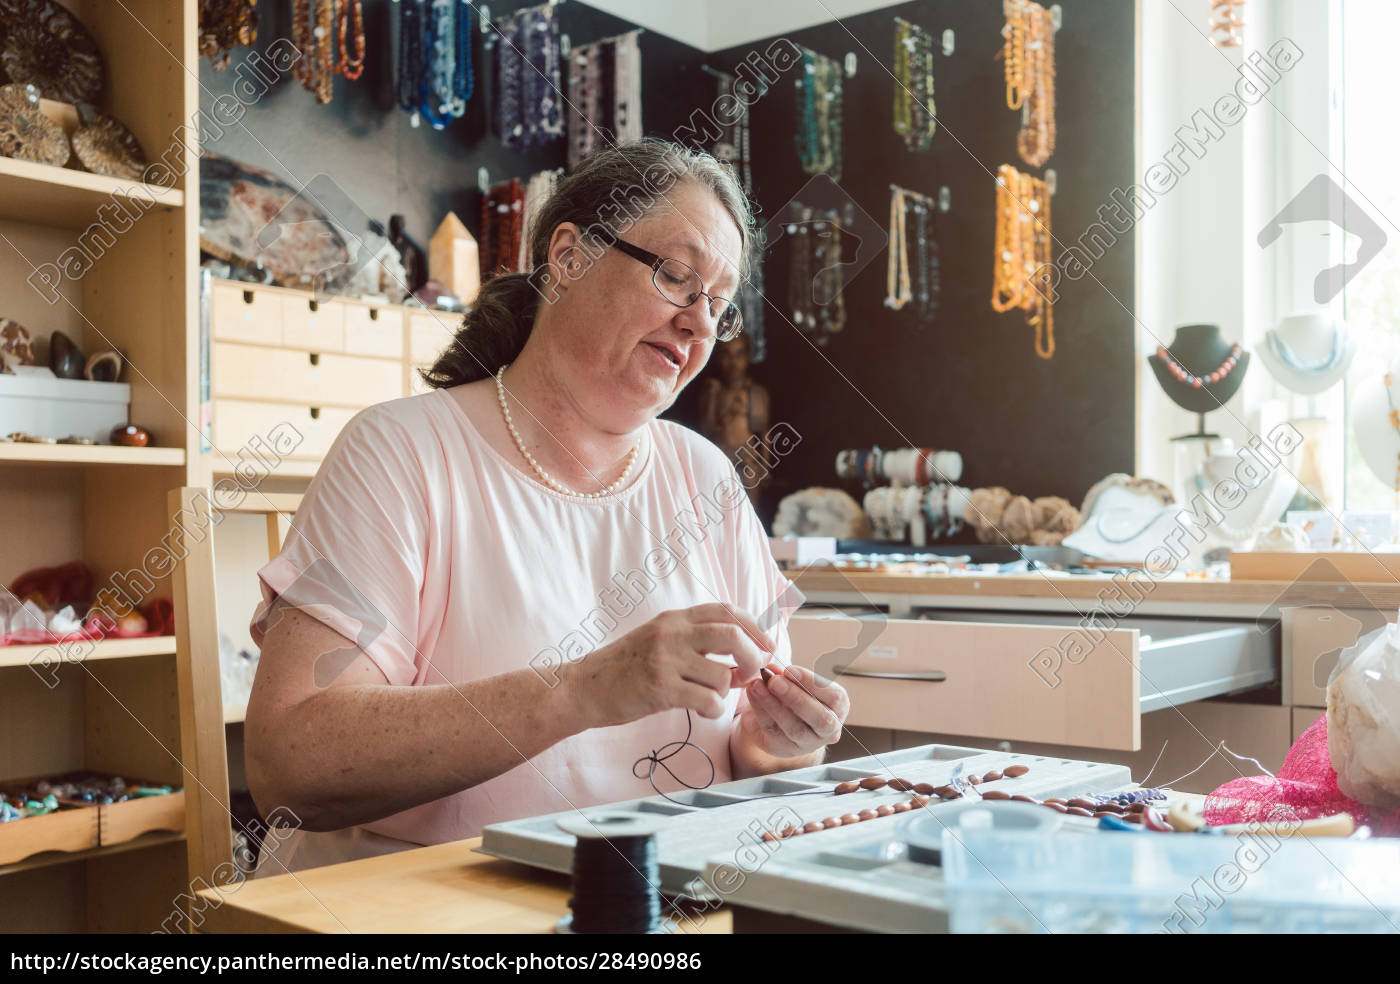 woman, working, on, a, gemstone, necklace - 28490986